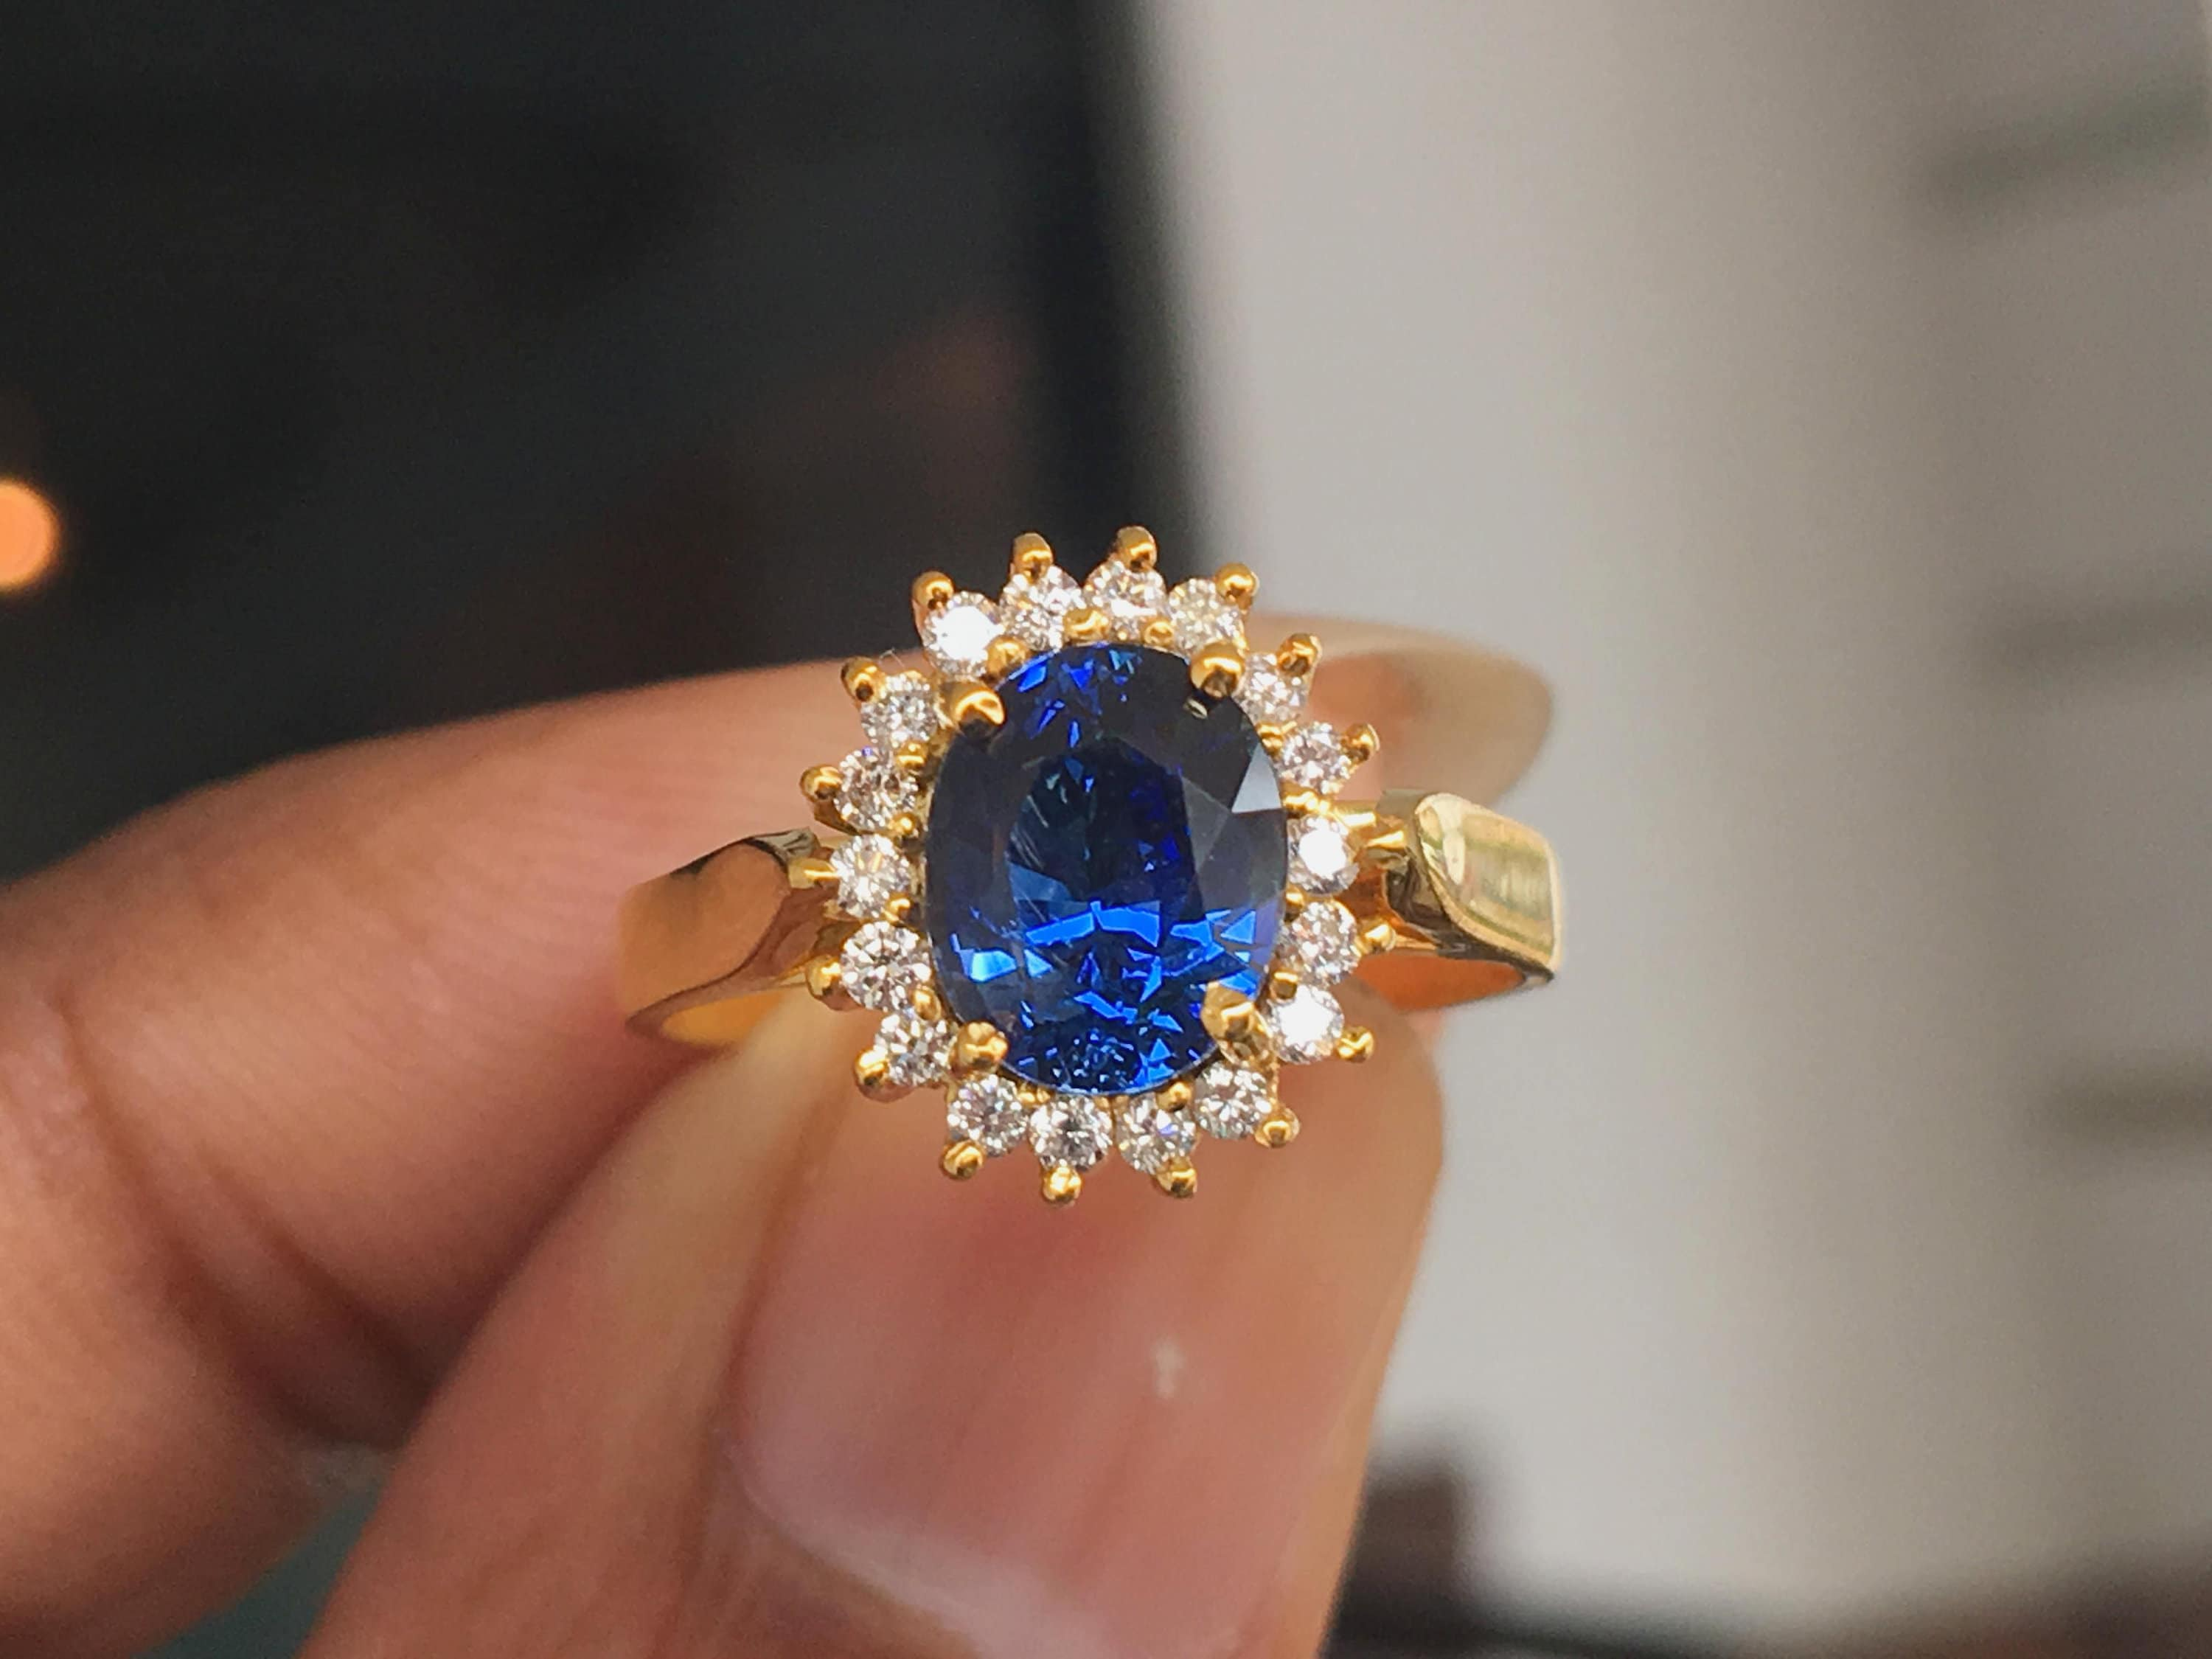 Vintage Engagement Ring 18K Yellow Gold Ring Set With Natural Blue Sapphires and Diamonds Ring Size 9 or R